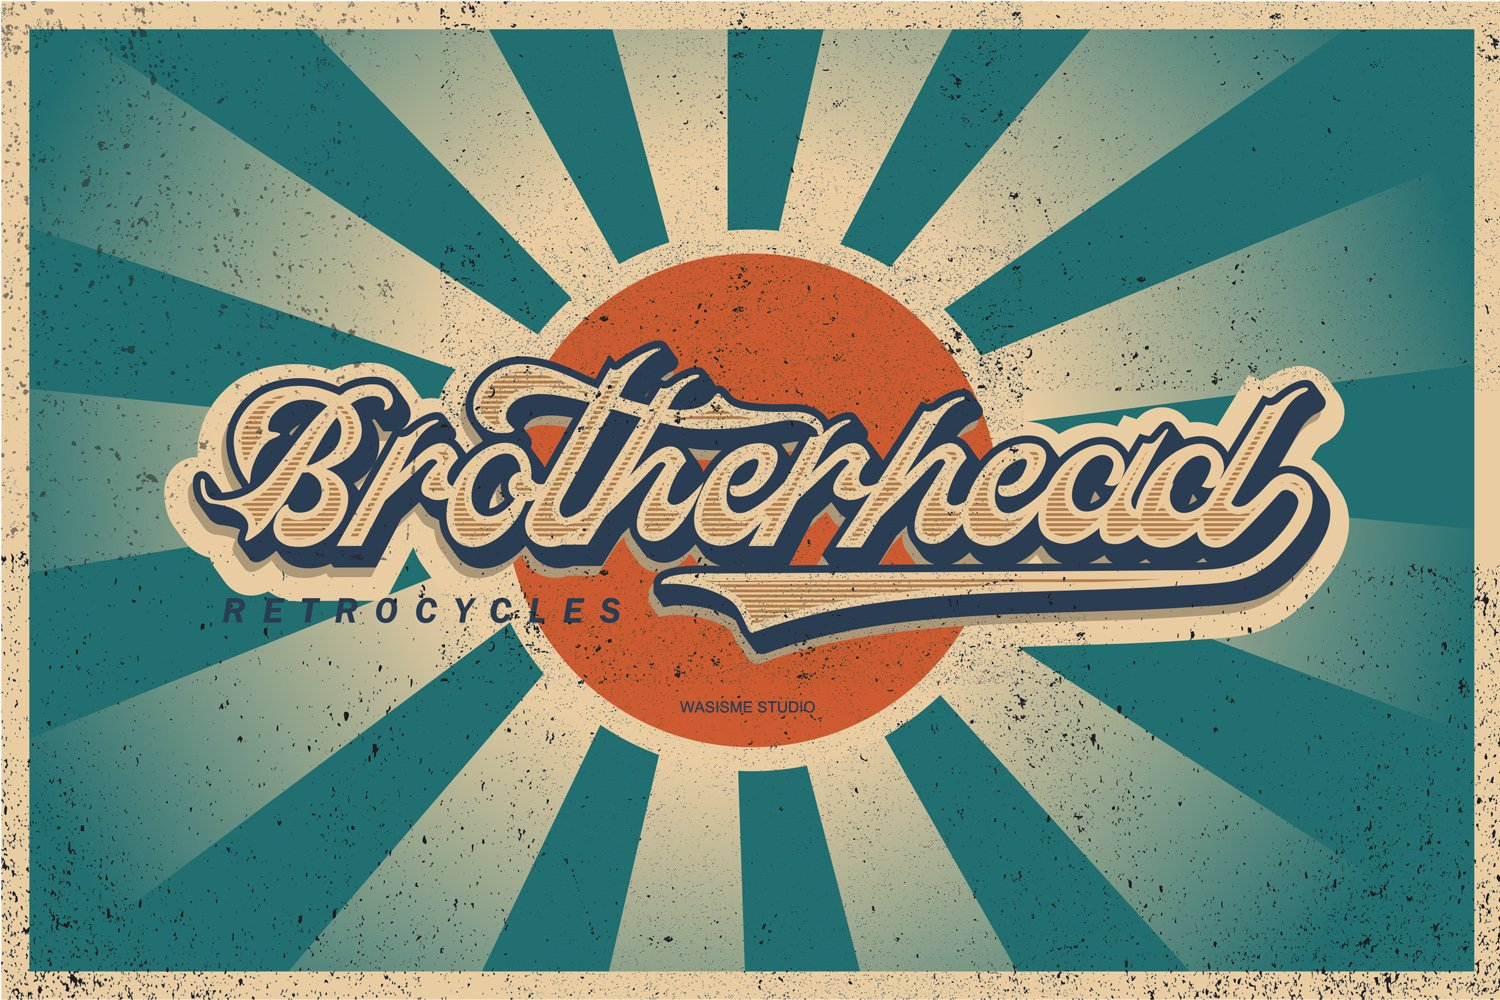 Brotherhead example image 1